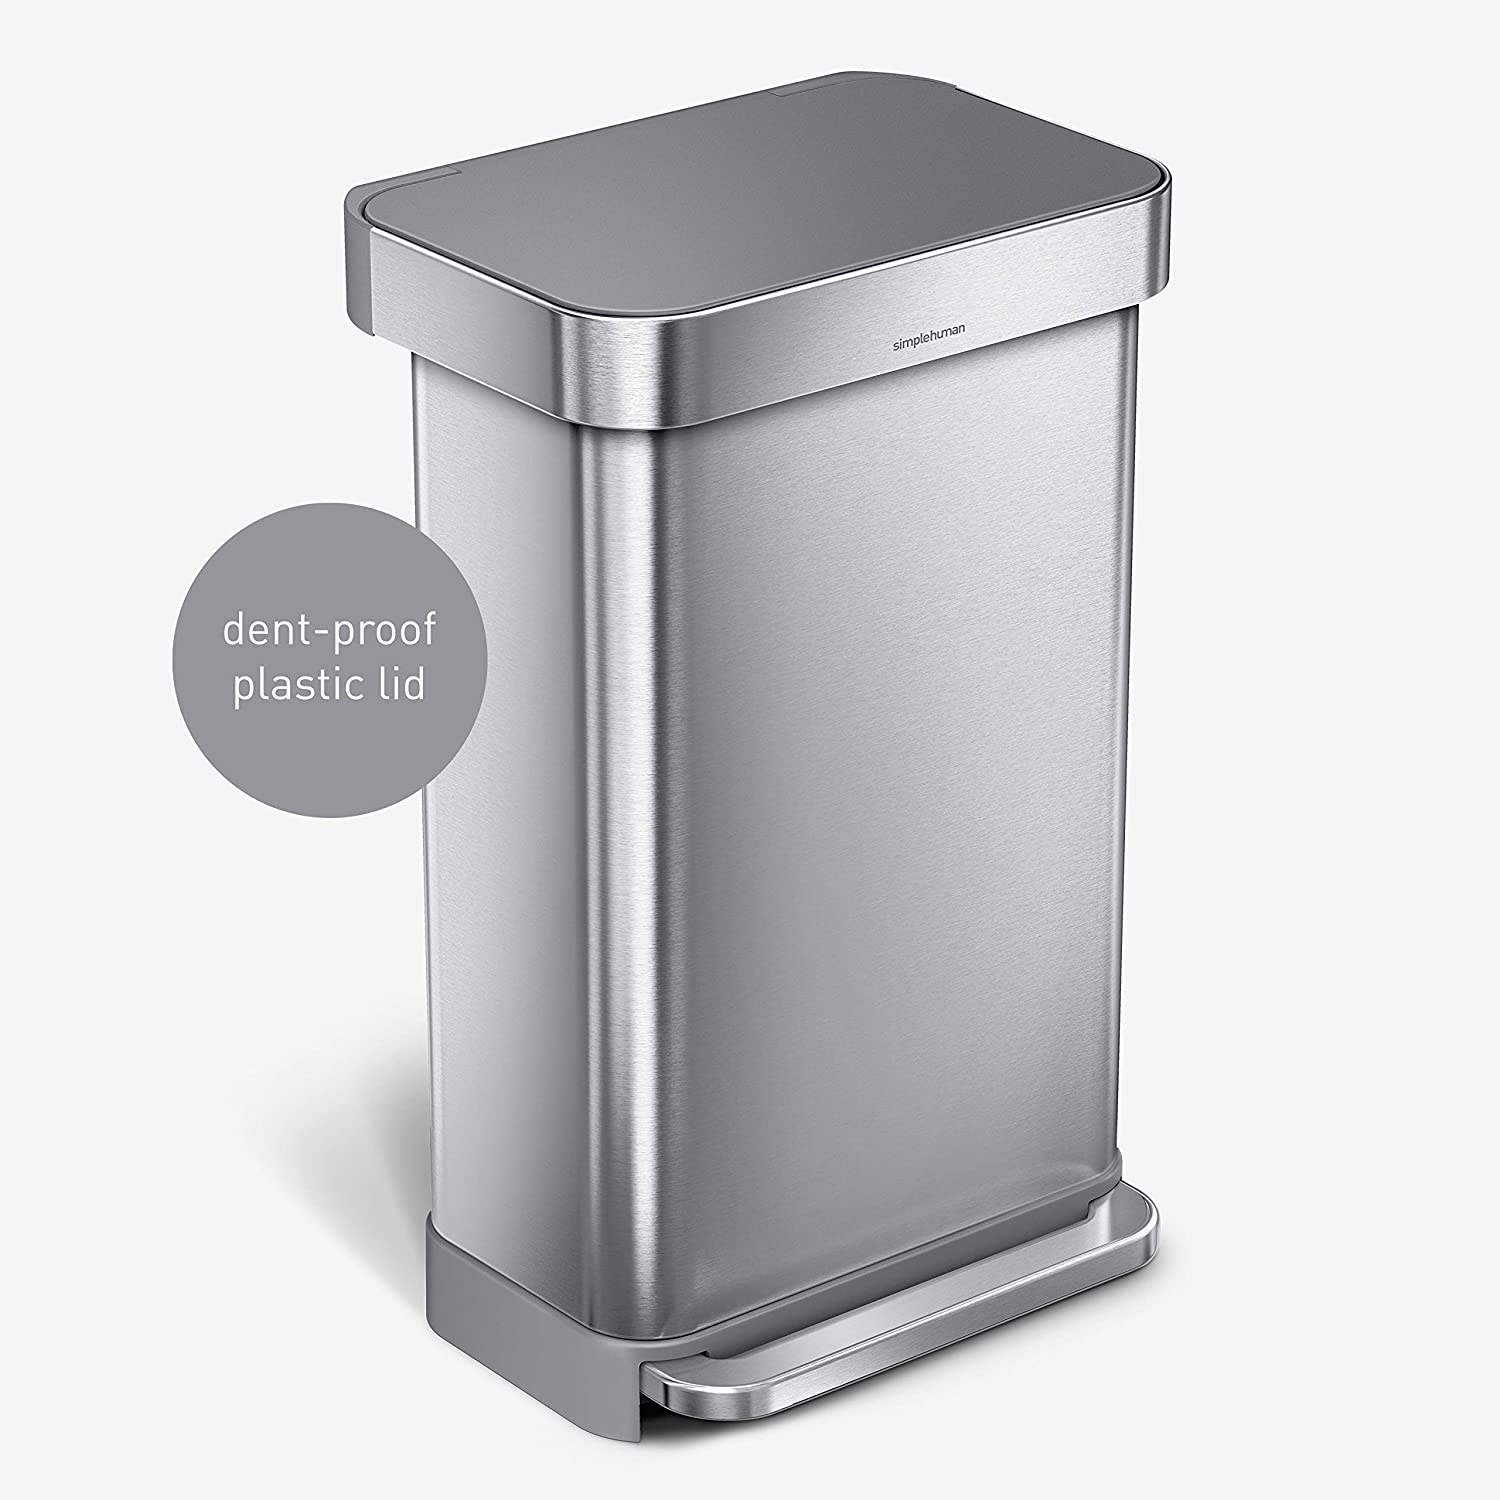 simplehuman Rectangular Hands-Free Kitchen Lid T Genuine Max 70% OFF Free Shipping Step Soft-Close